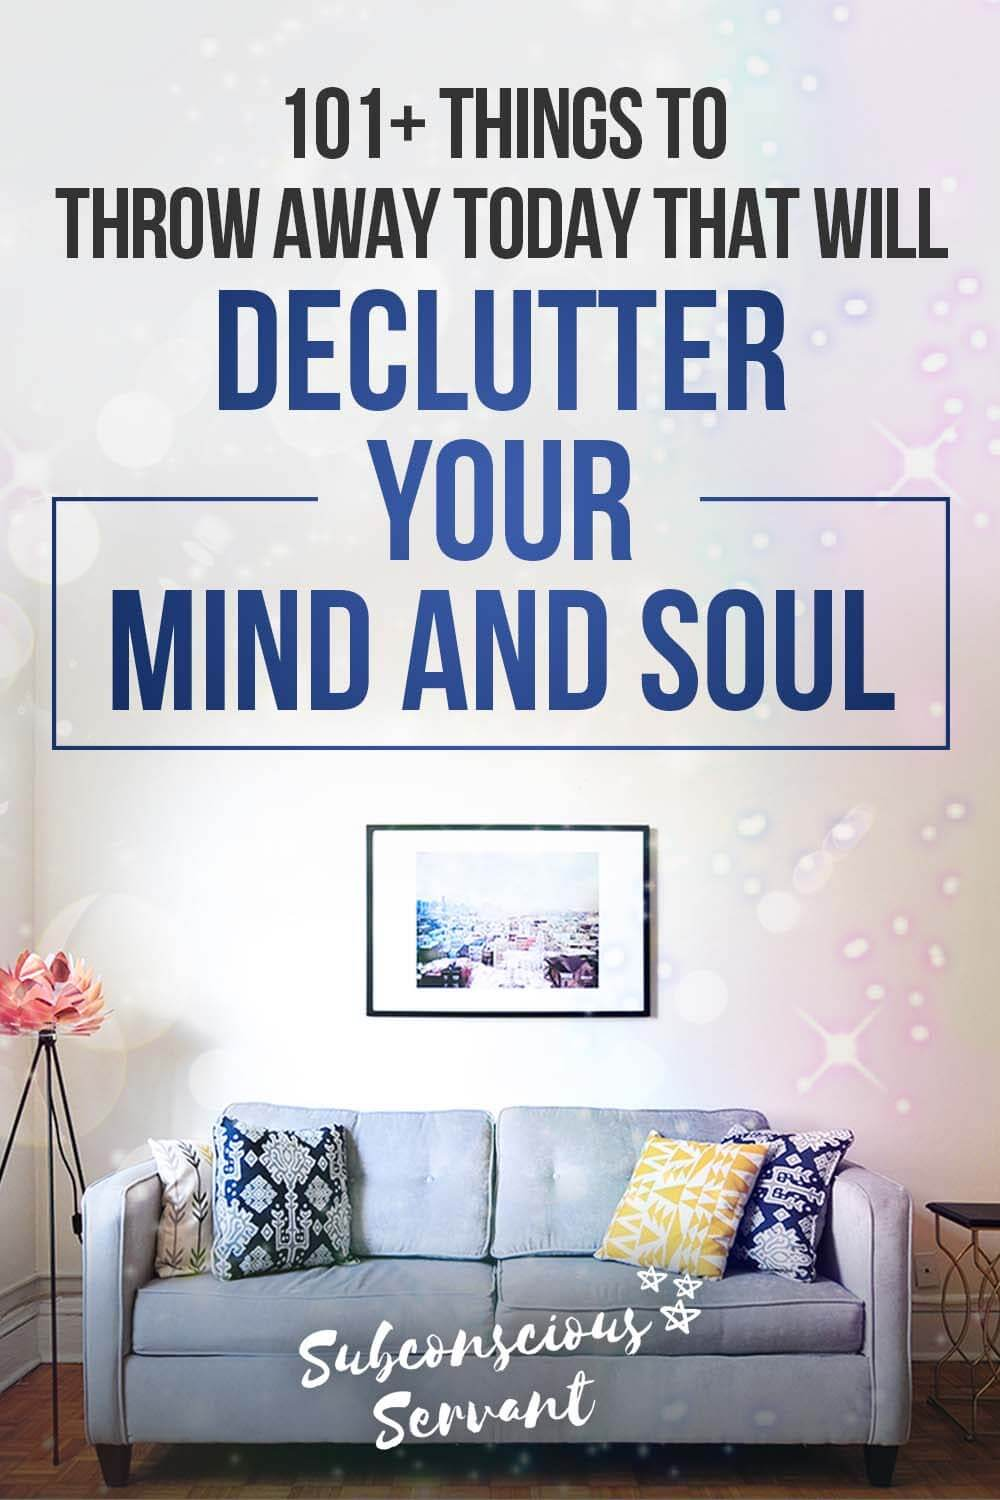 101+ Things To Throw Away Today That Will Declutter Your Mind And Soul